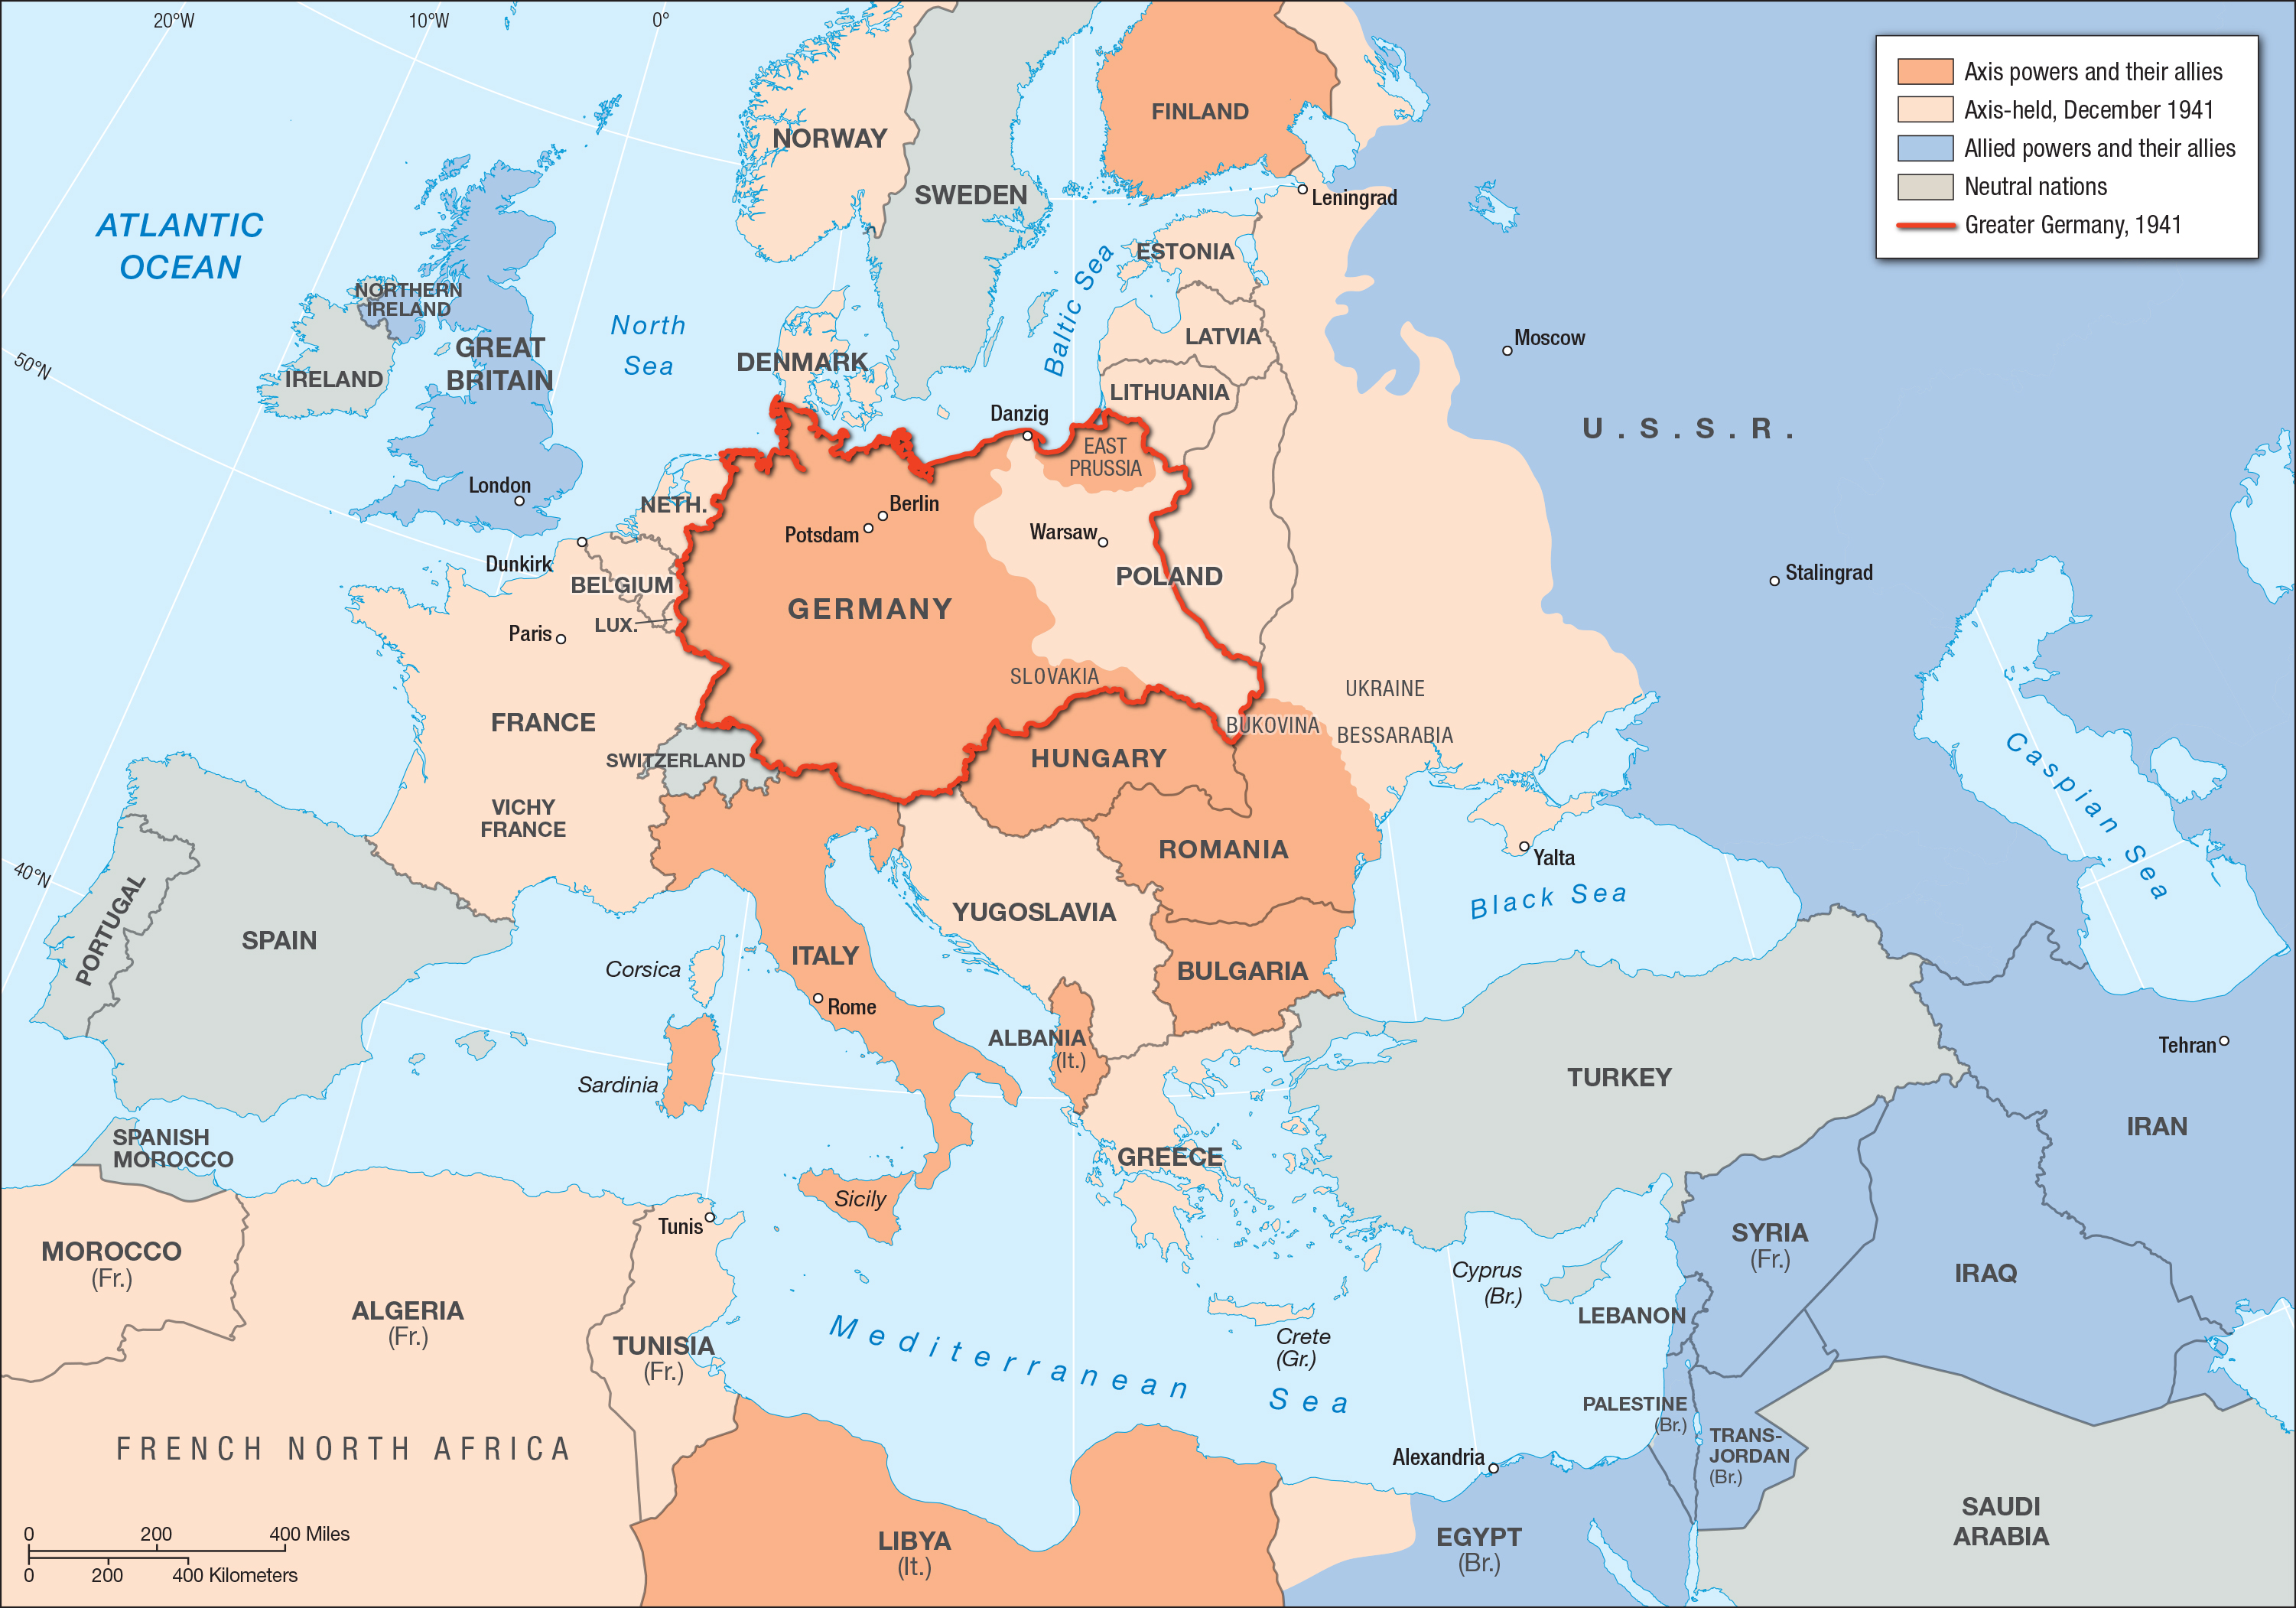 an analysis of allied powers and germany The allies could not have enough ships to invade europe before spring of 1942, so they planned to bomb germany until then and send war materials to the soviet armies fighting germany in russia.